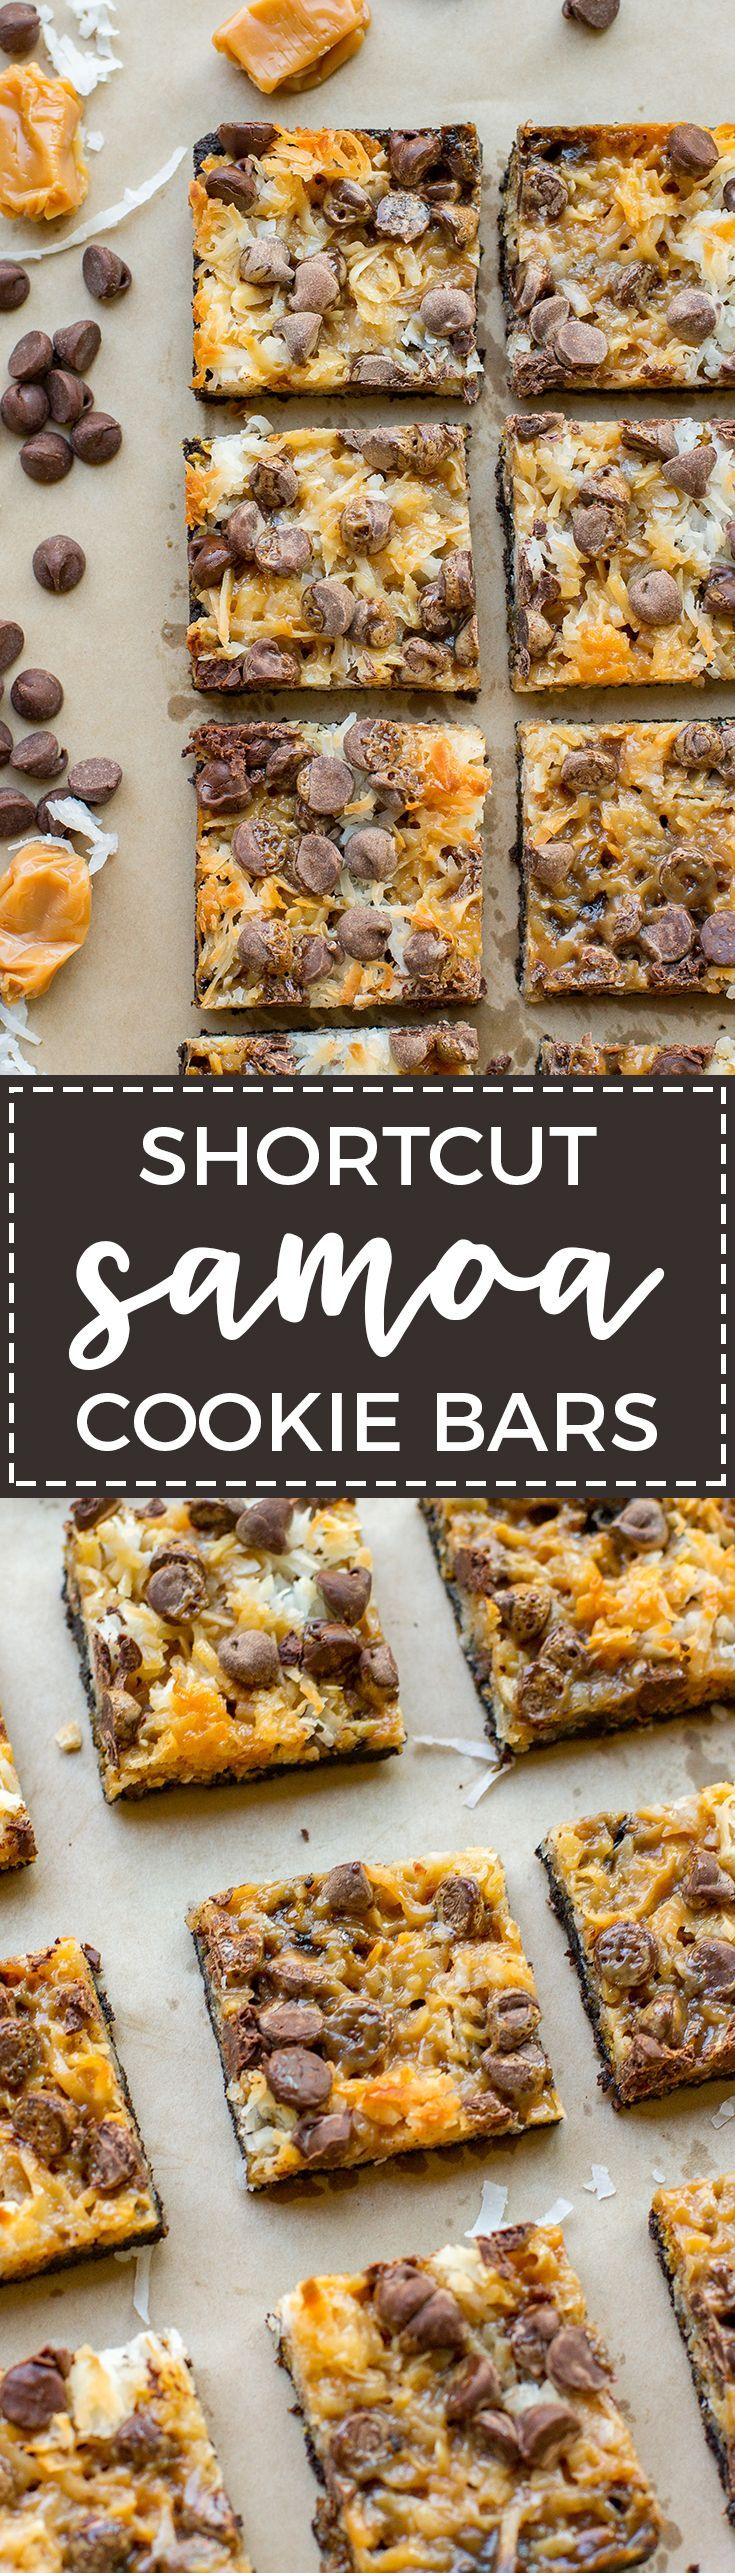 Shortcut Samoa cookie bars | Chocolate chips, salted caramel, sweetened coconut, and an Oreo crust make an easy at-home version of the classic Girl Scout cookie. via @nourishandfete